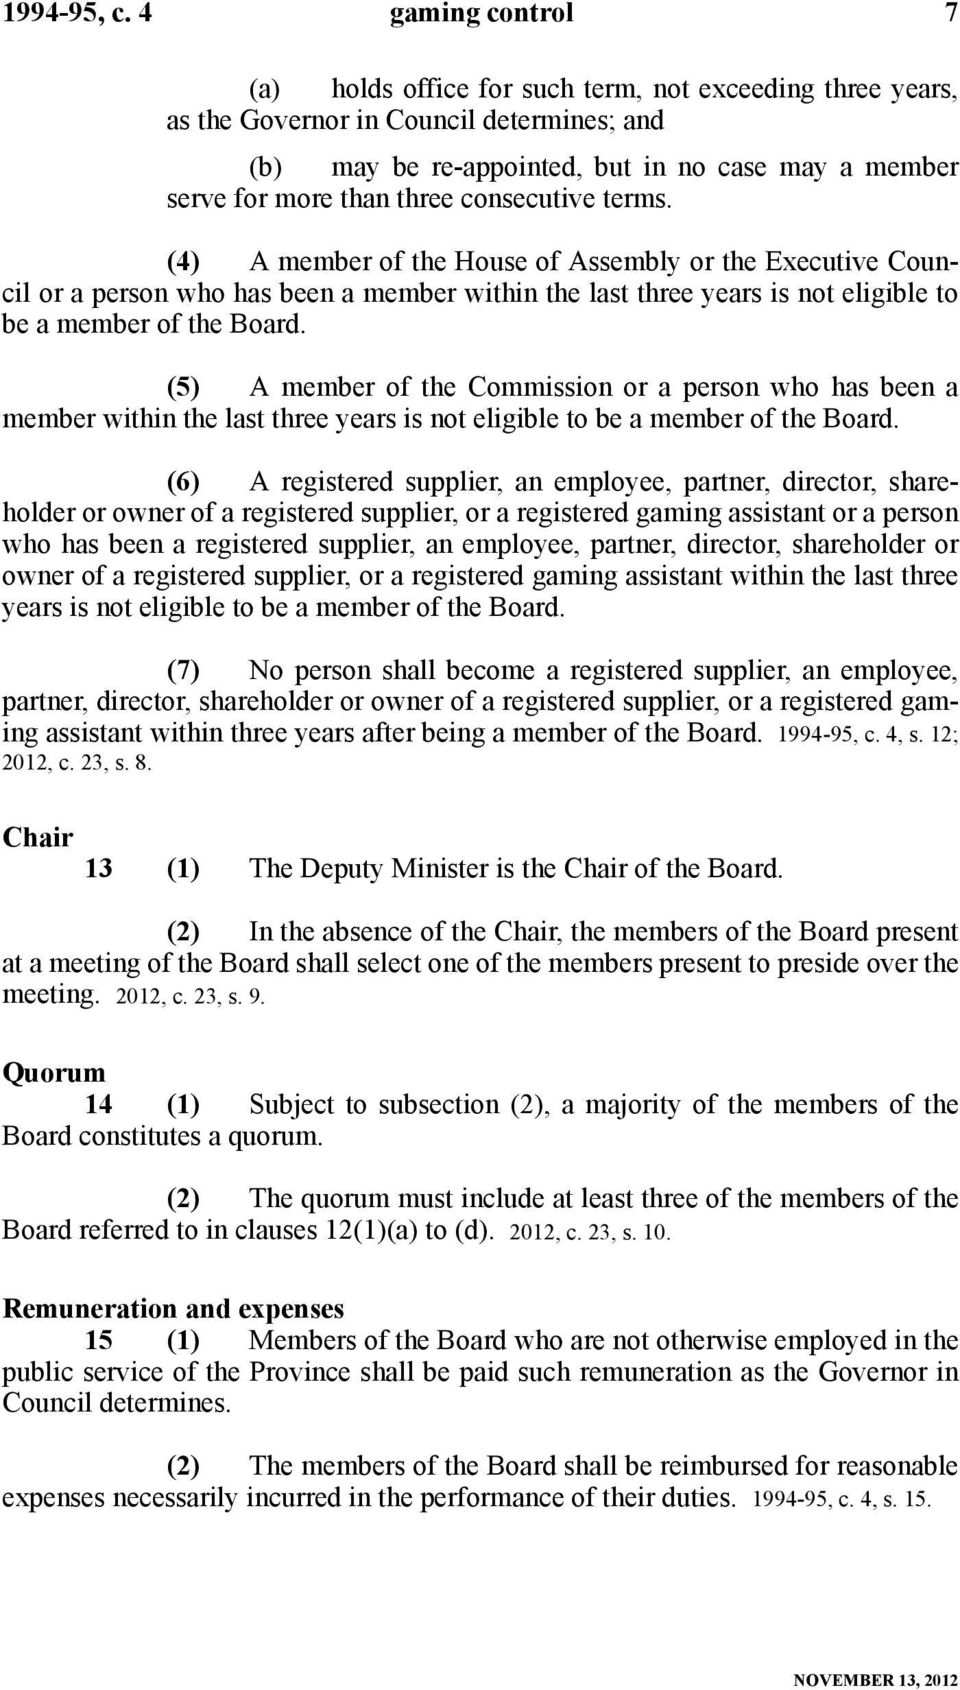 consecutive terms. (4) A member of the House of Assembly or the Executive Council or a person who has been a member within the last three years is not eligible to be a member of the Board.